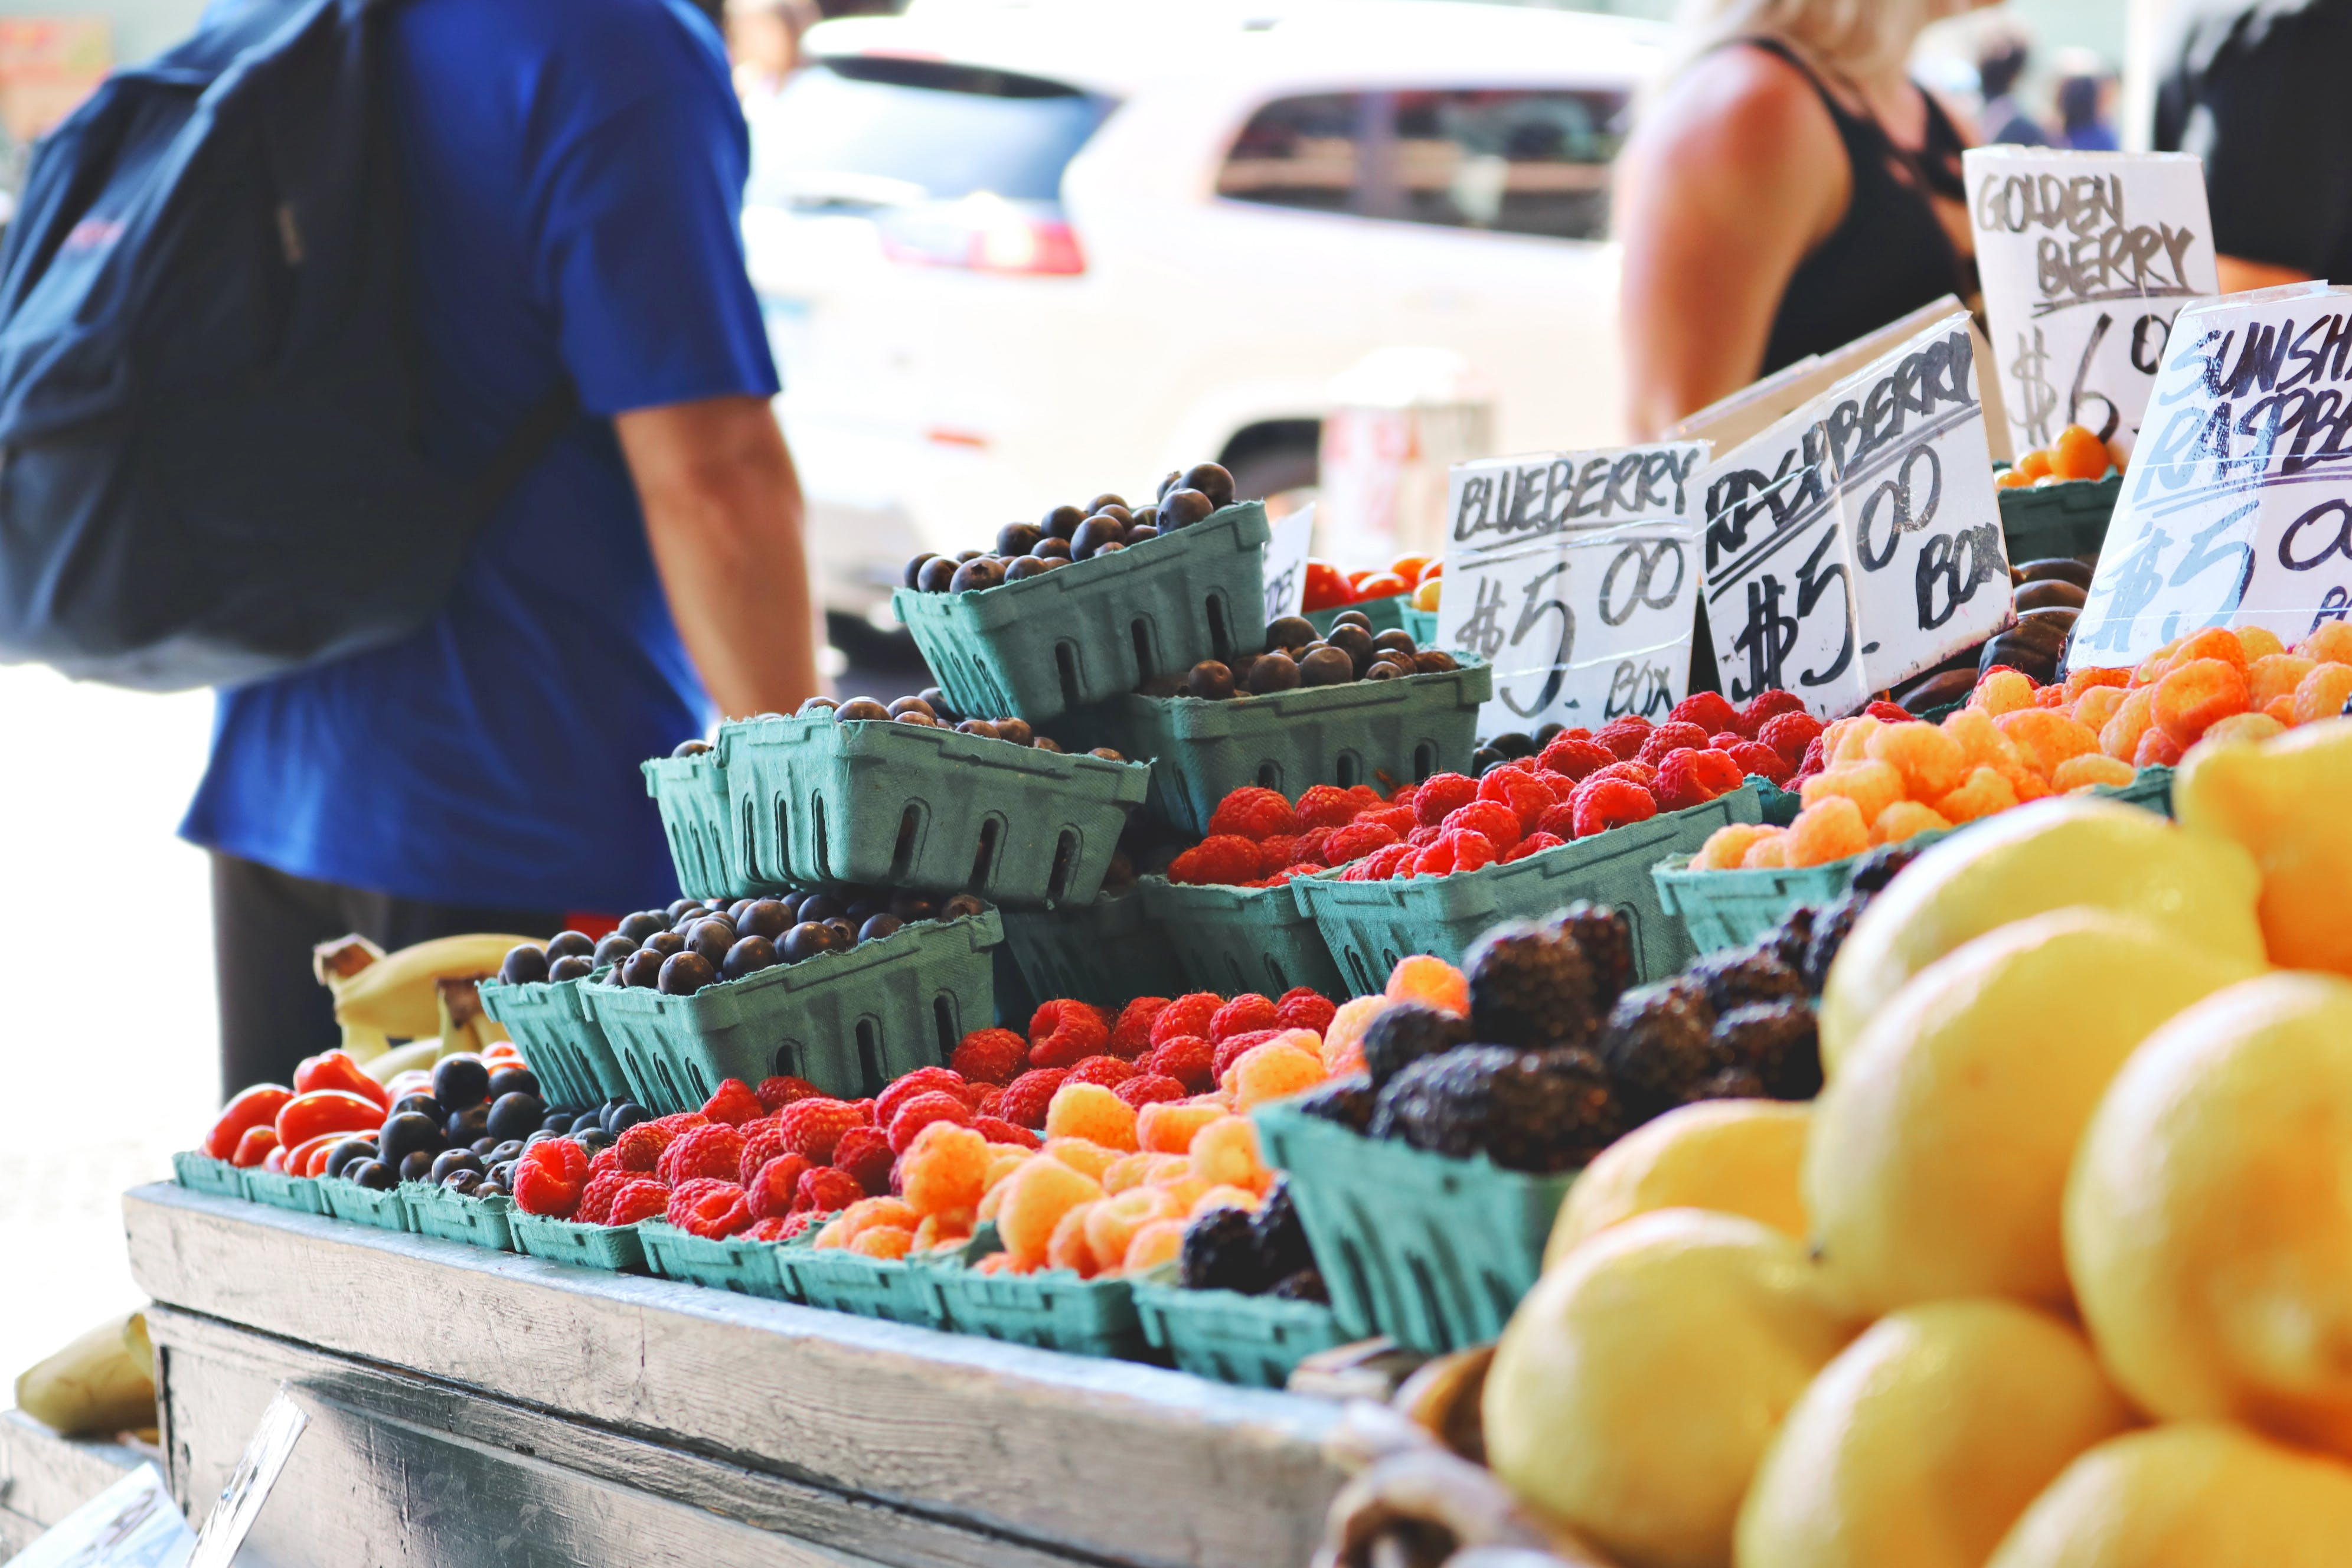 Man Wearing Blue Top and Black Bottom Standing Near Fruit Stand